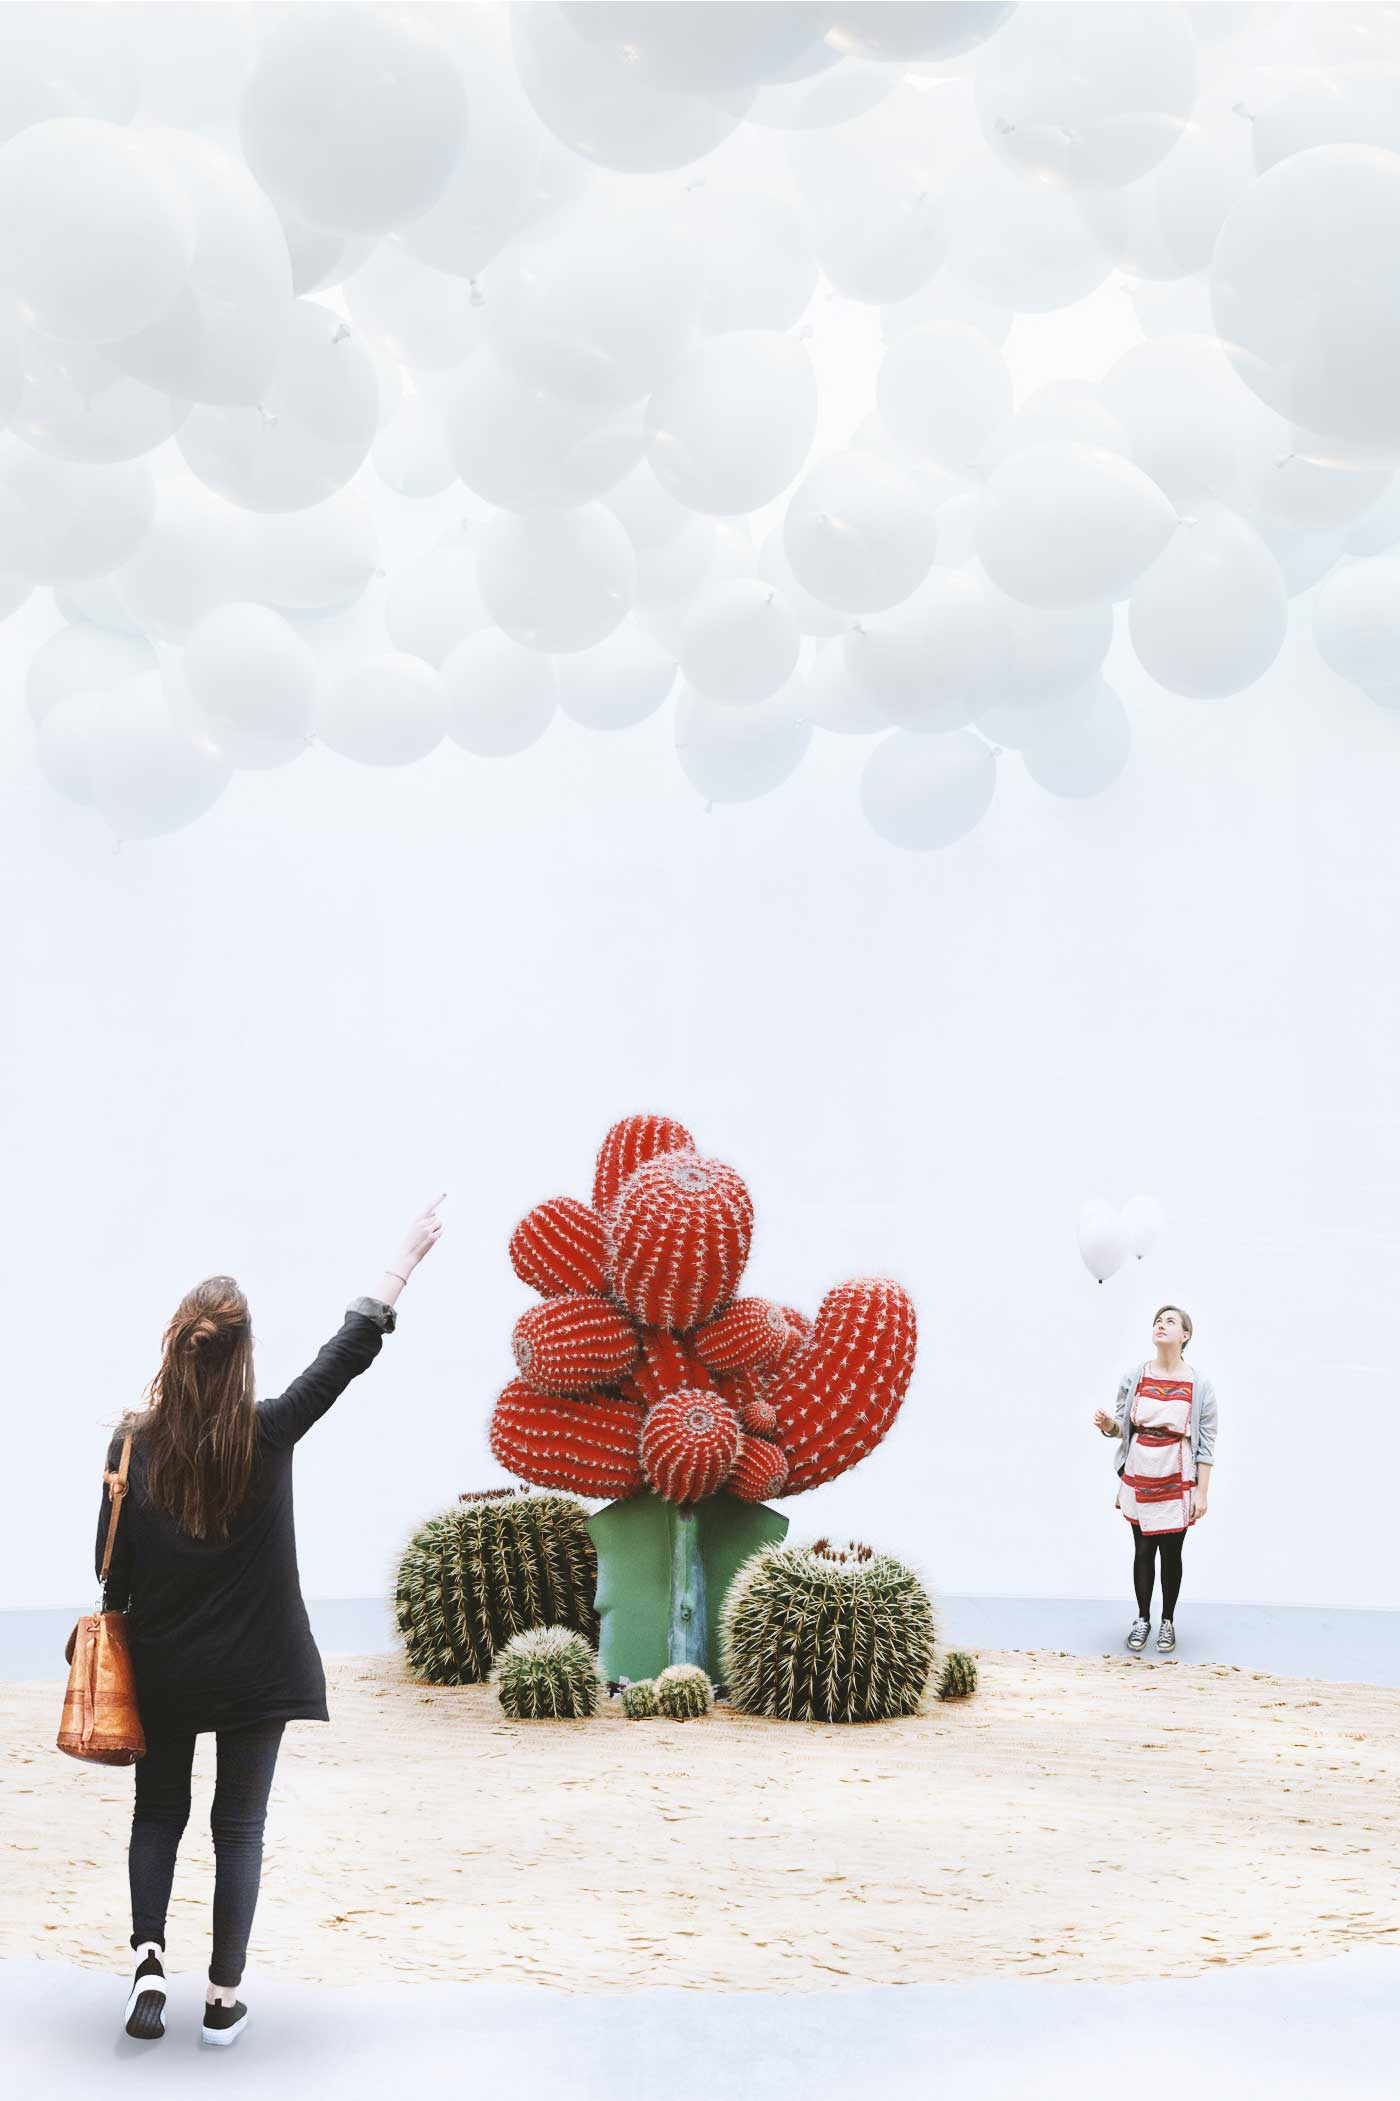 Tension - red cactus and white balloons gallery